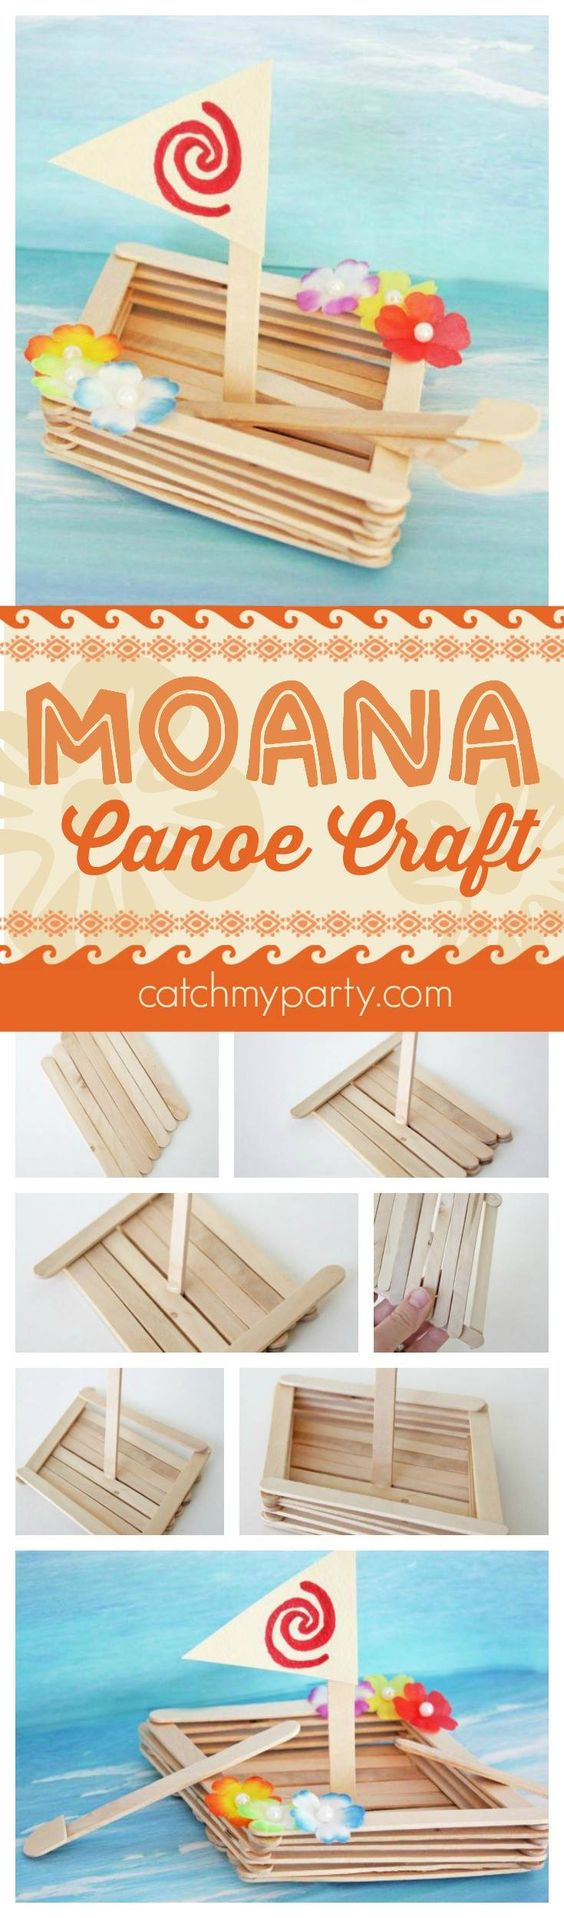 Fun Moana canoe craft perfect for a Moana birthday party activity, party favor, or rainy day craft with your kids. See more Moana party ideas at CatchMyParty.com.: